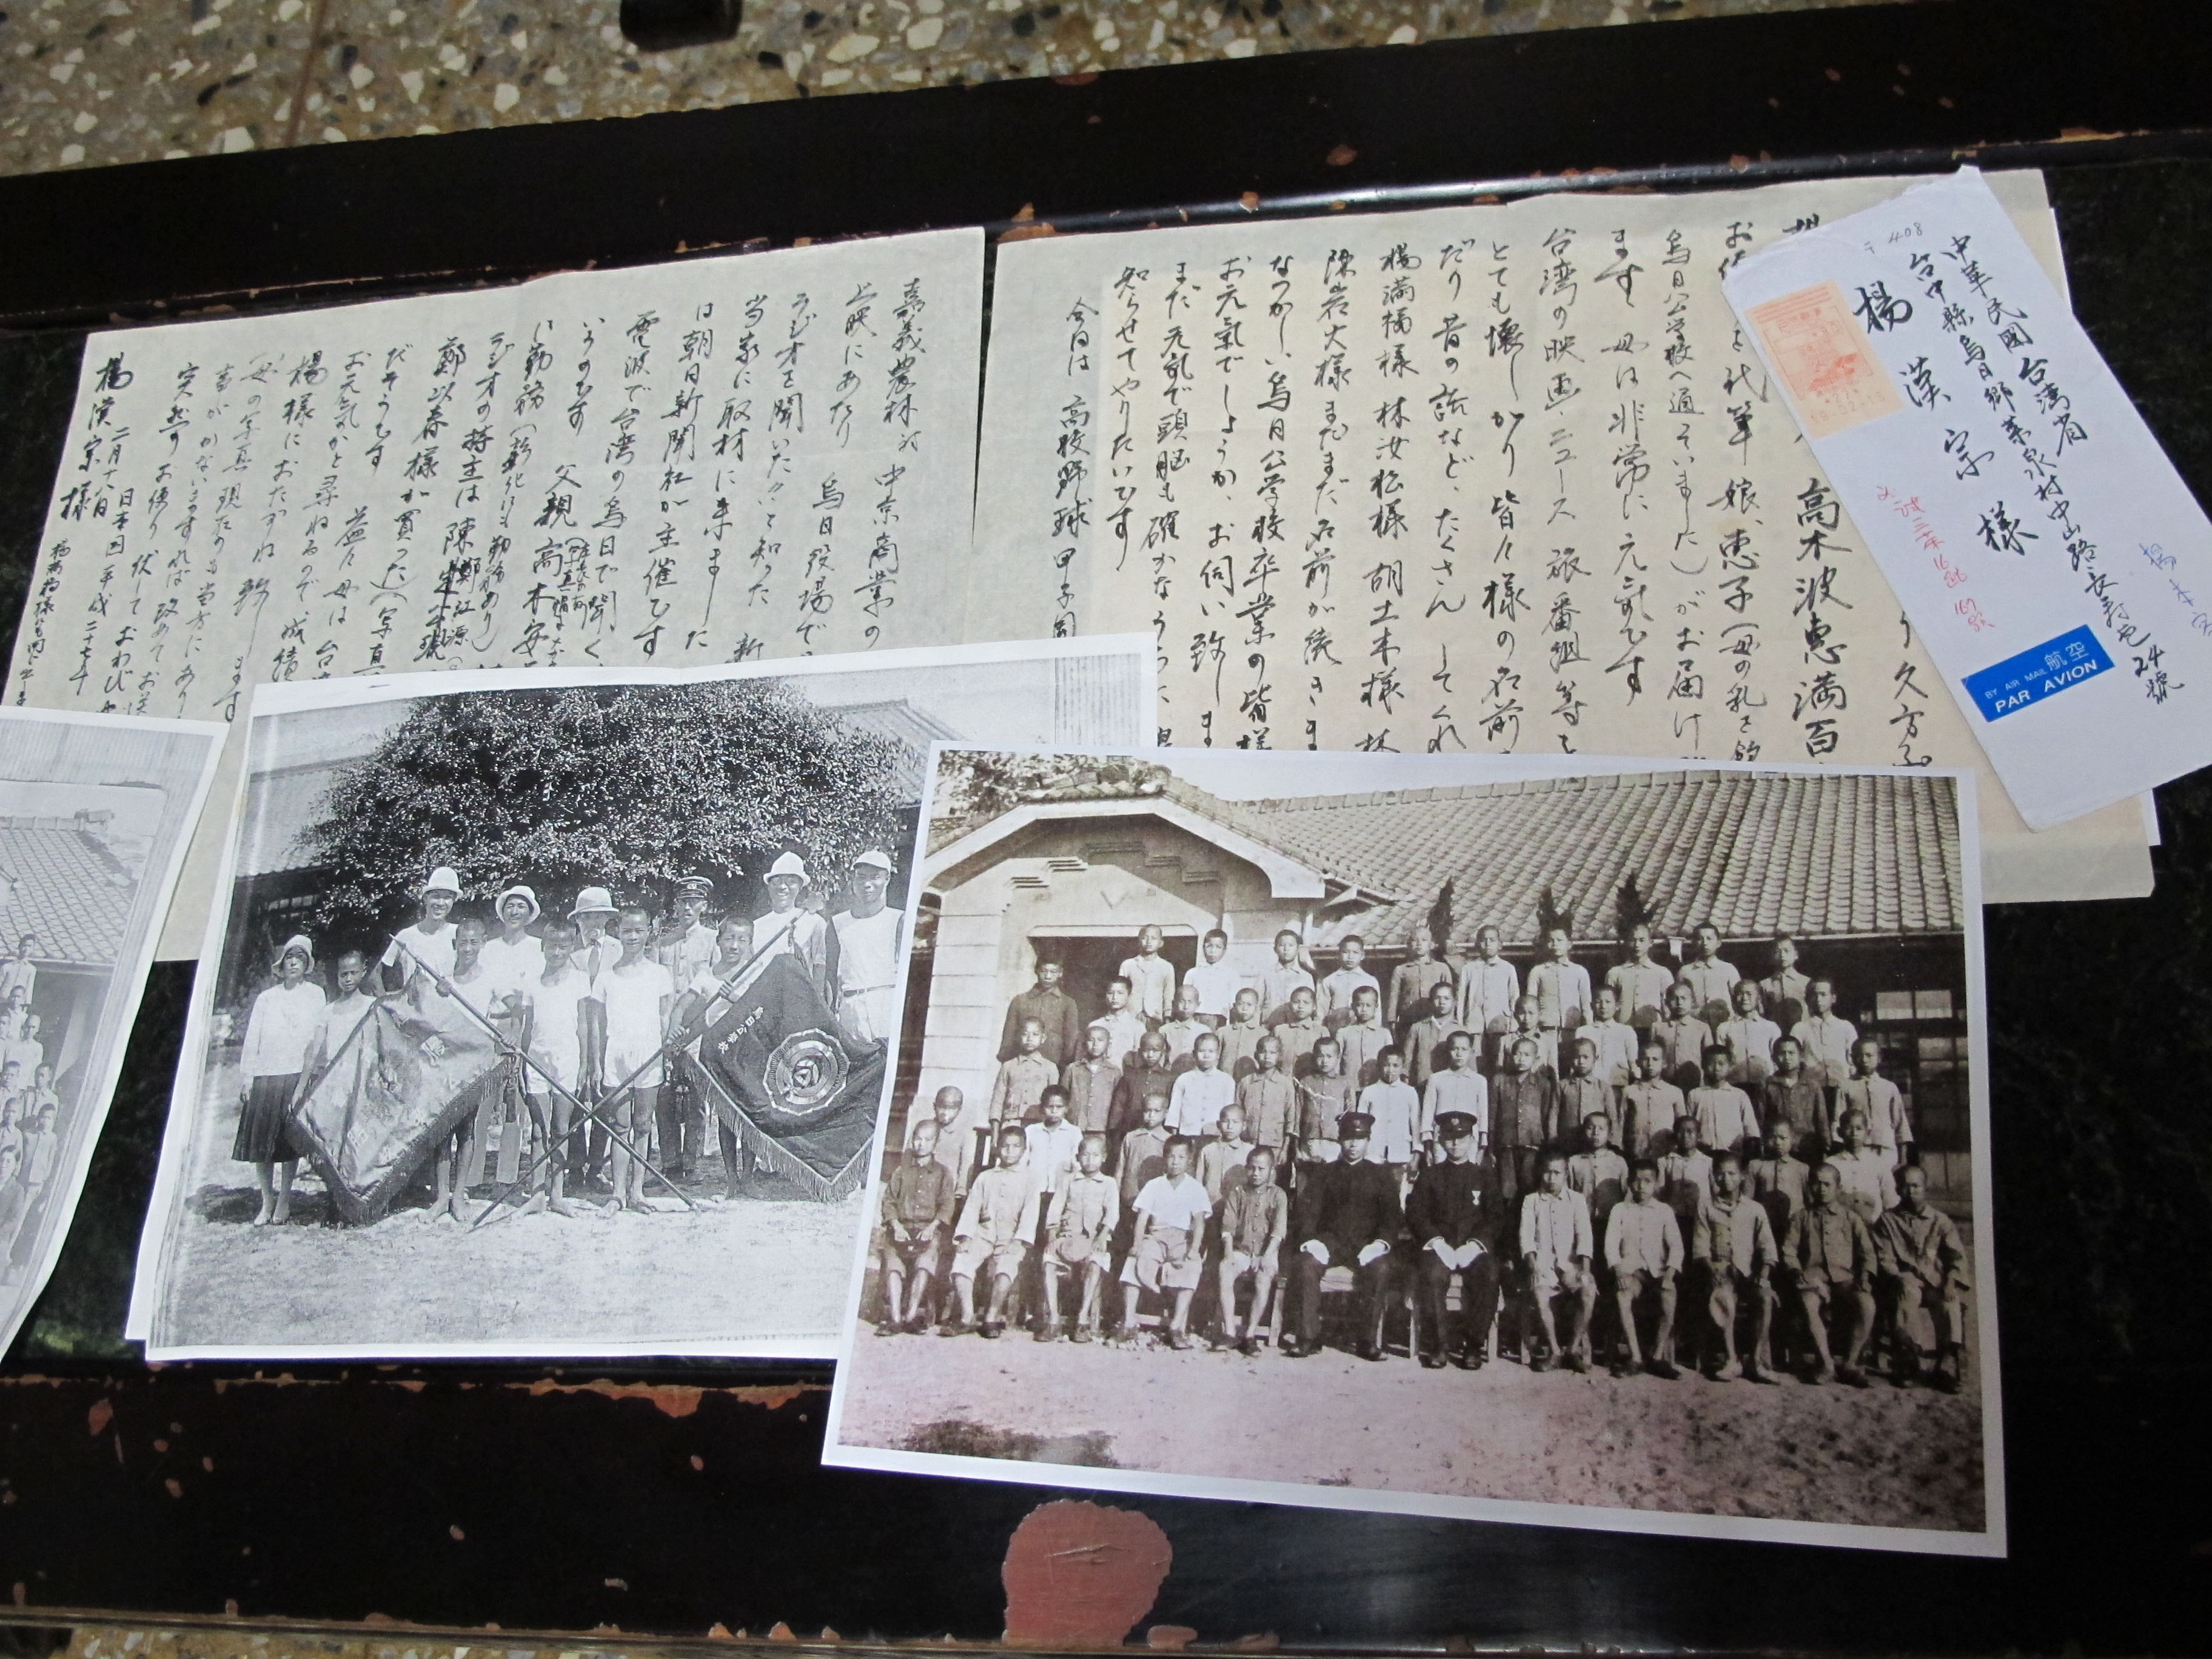 This photo, taken Aug. 26, shows the letter and photos Namie Takaki sent to Yang Han-tsong, one of her former students at Wurih Elementary School in Taichung, Taiwan. | KYODO